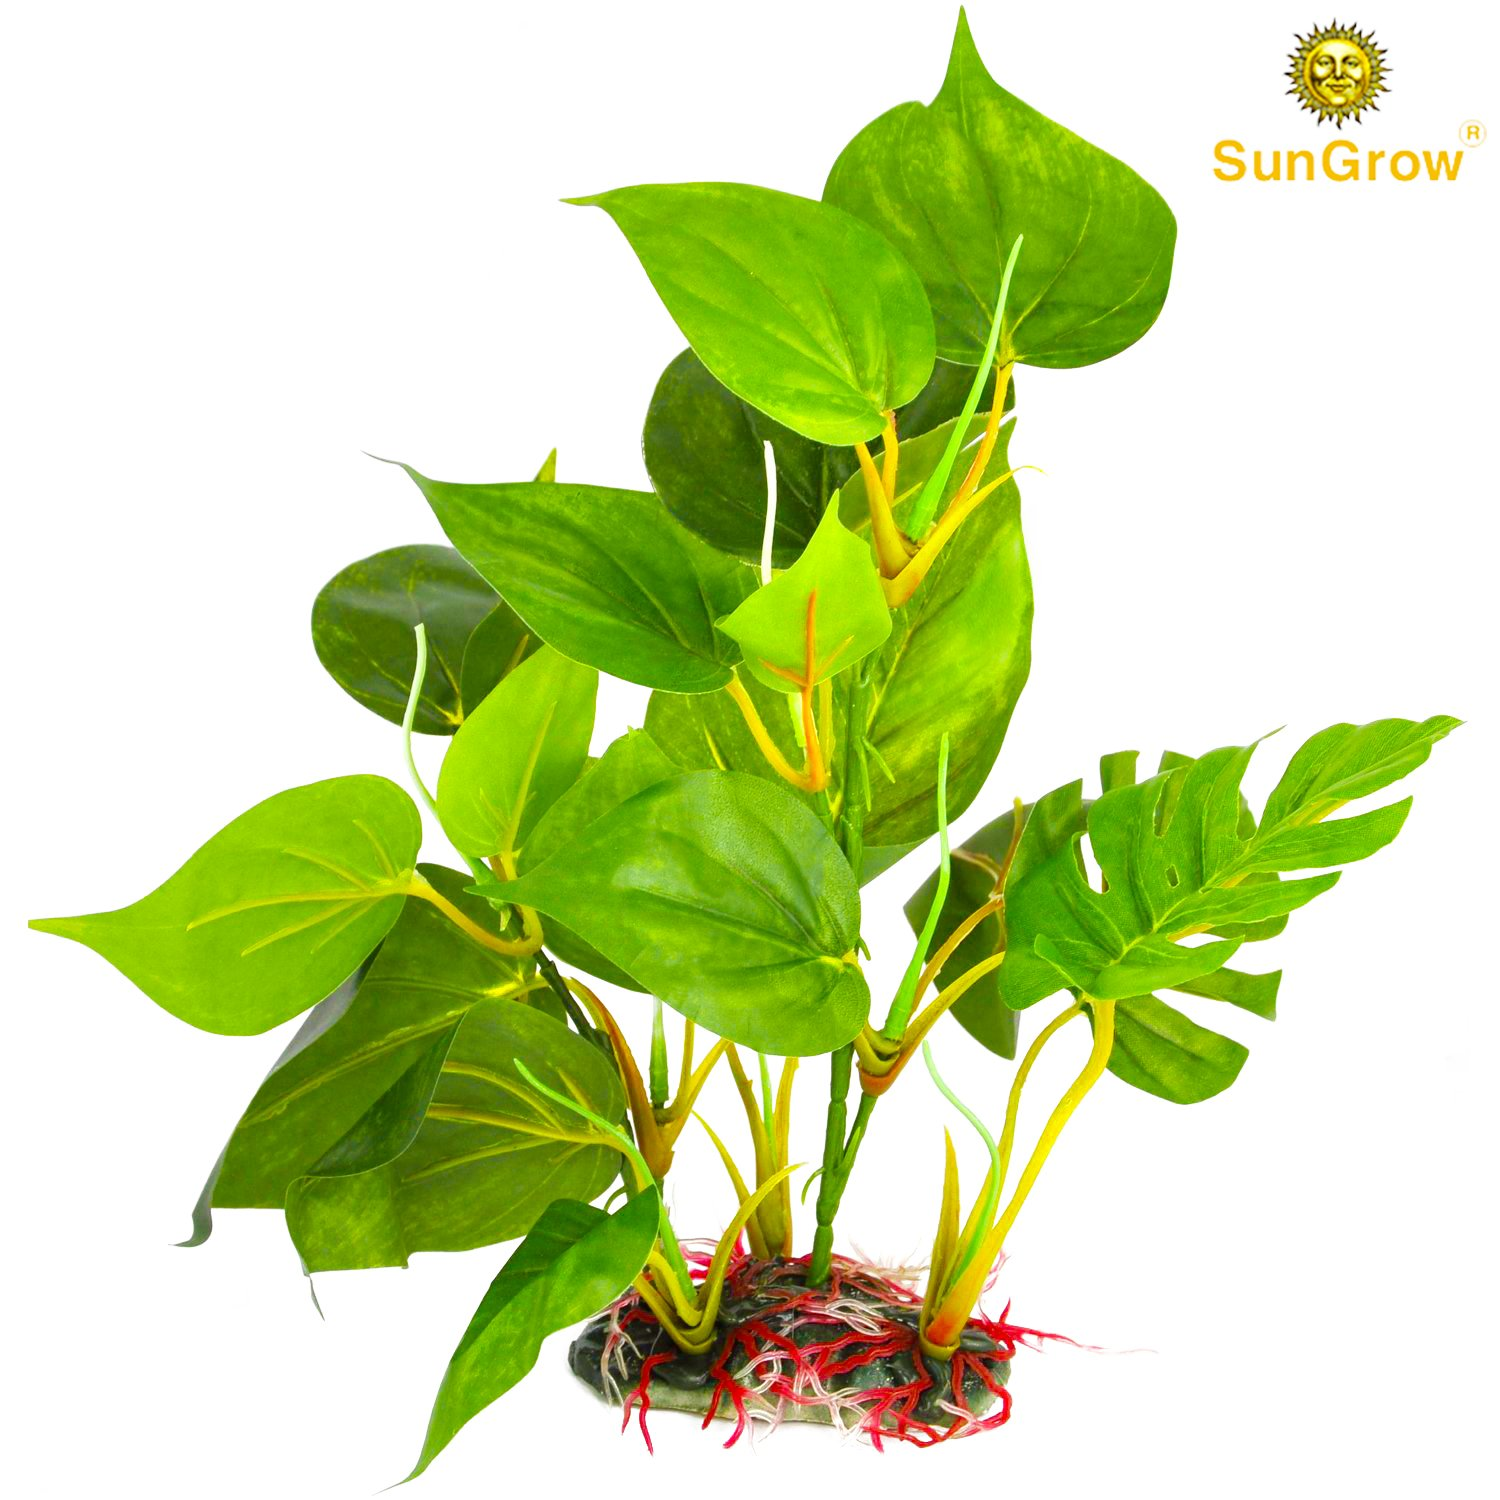 (Anubias) Beautiful Plastic Aquarium Plant Set by SunGrow  Vibrant bright Green  Life-like & Attractive for your tank  Non- toxic & Safe for all Fish & pets   Easy to clean   Zero maintenance   No CO2 needed